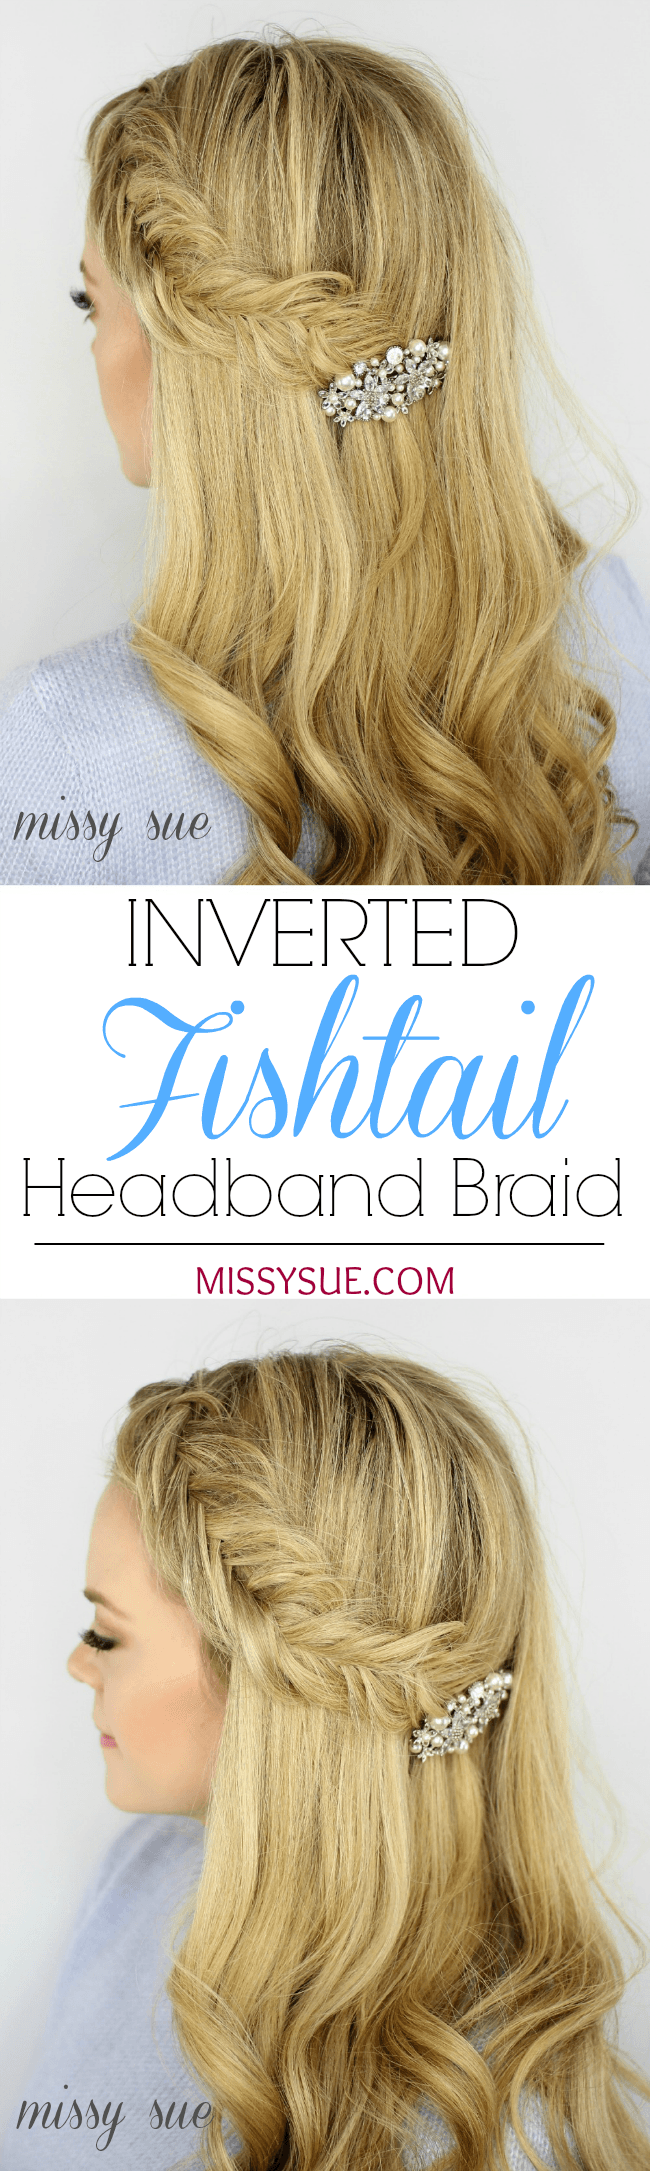 Inverted Fishtail Braided Headband